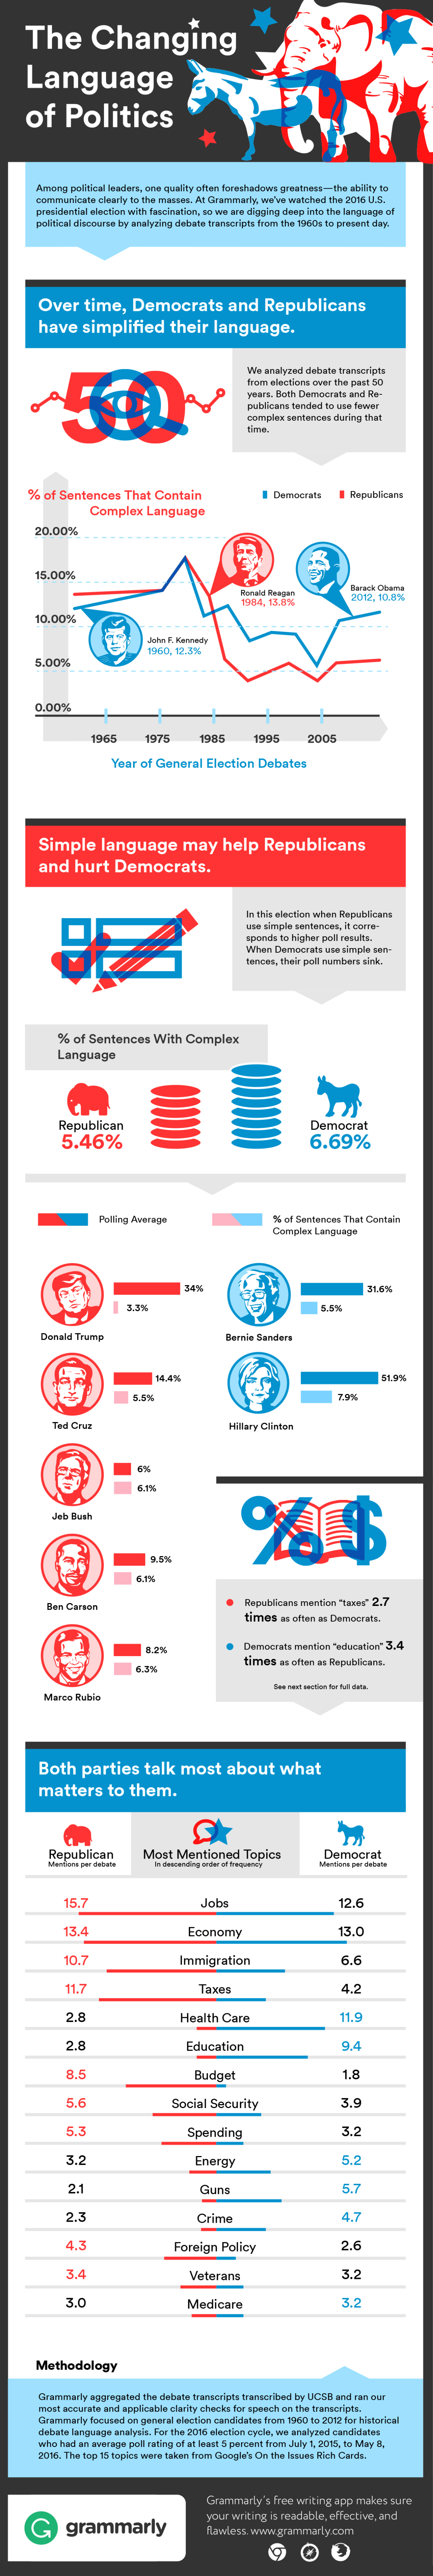 Grammarly Infographic Political Language Changes